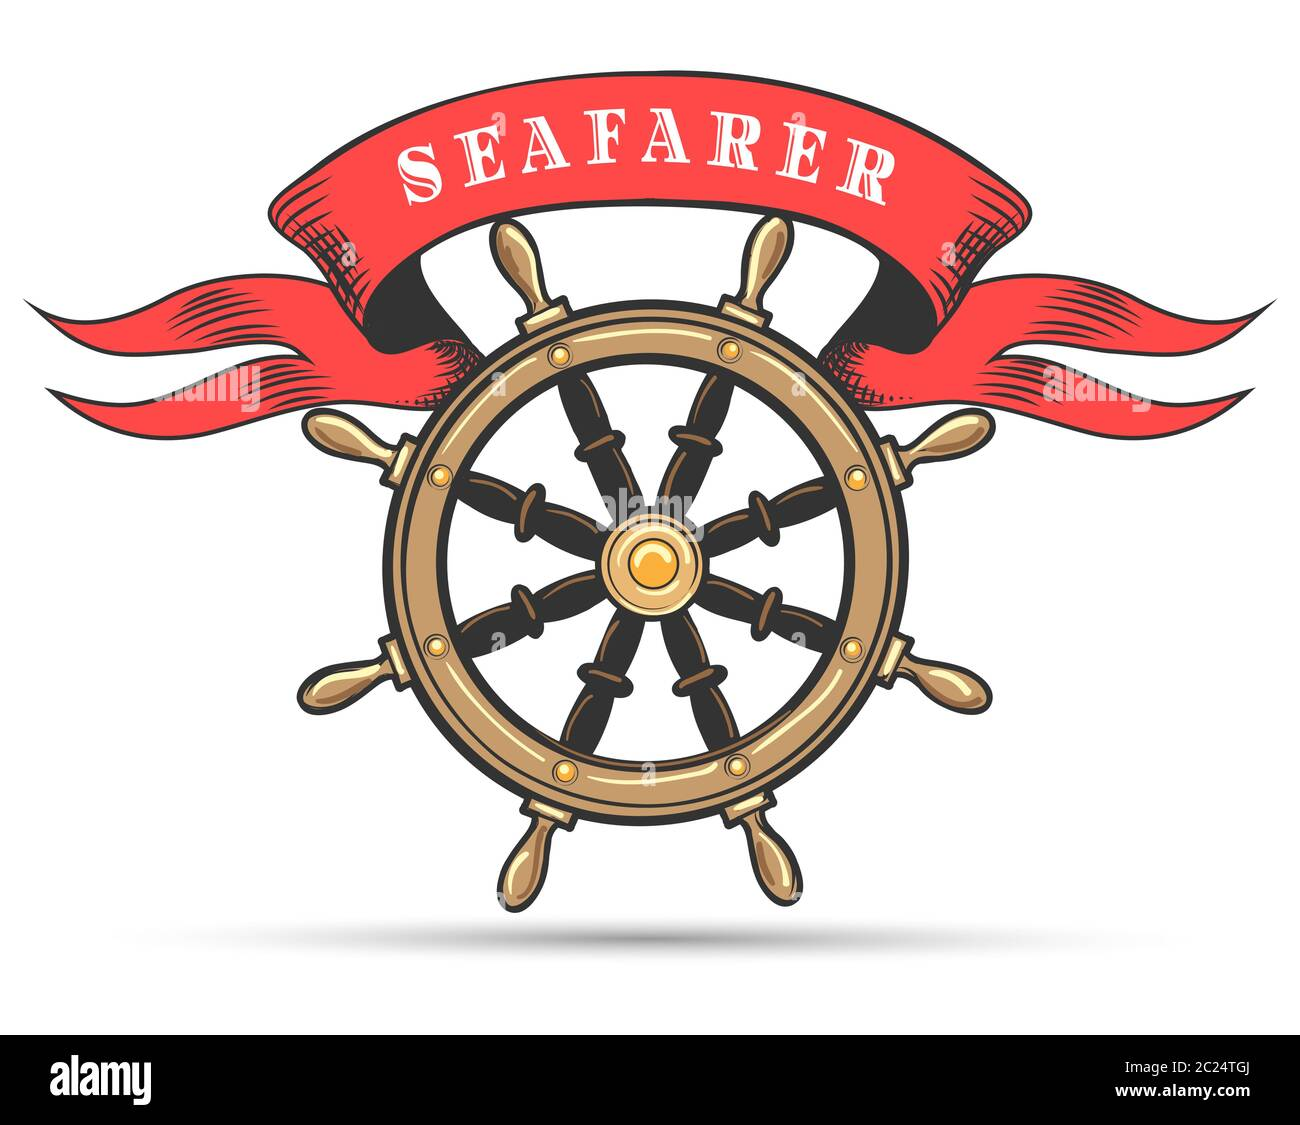 Ship Steering Wheel And Banner With Wording Seafarer Vector Illustration Stock Vector Image Art Alamy